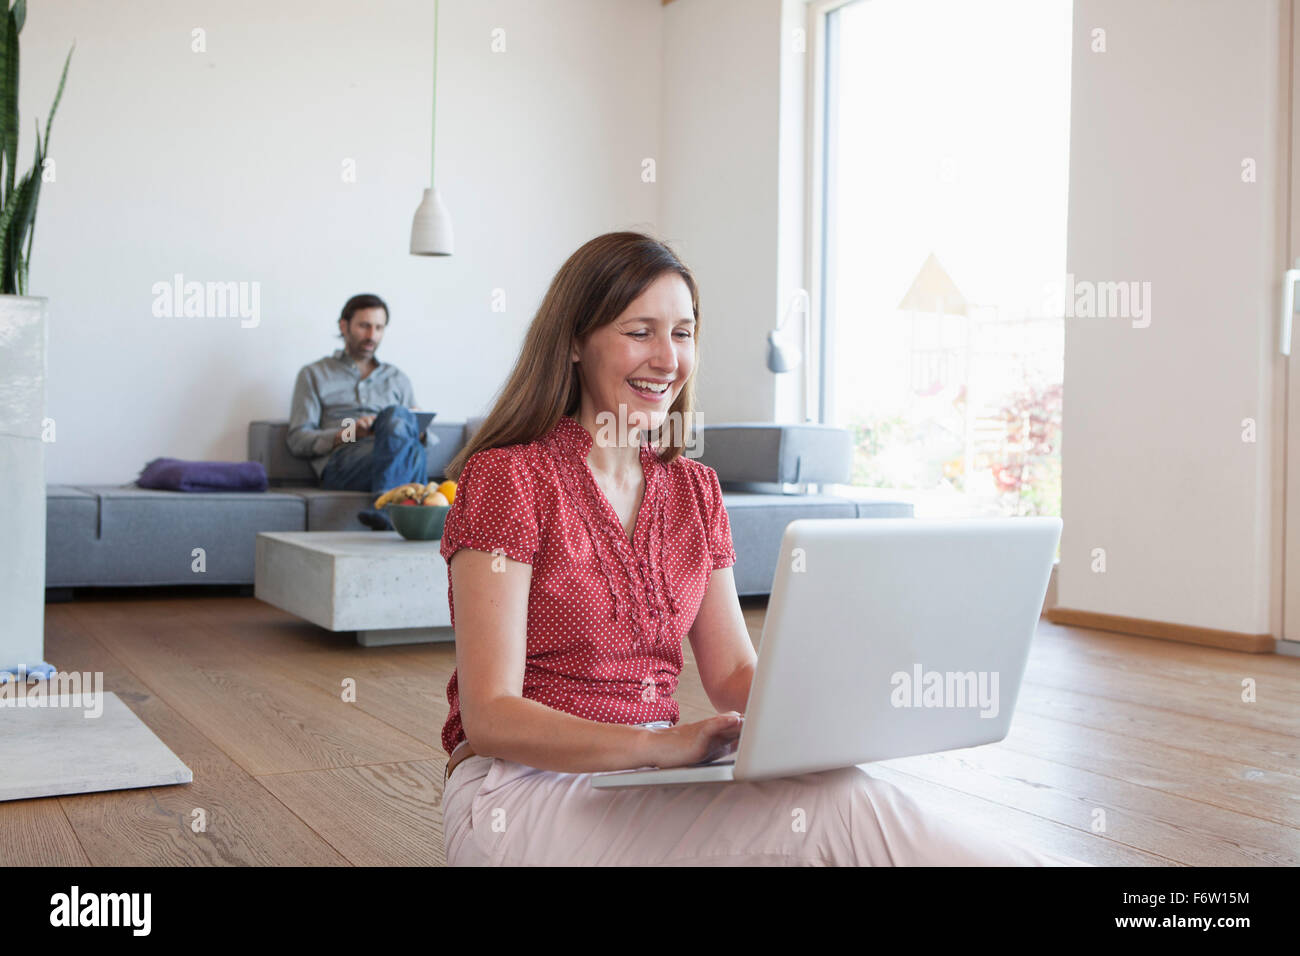 Mature Woman using laptop on floor in living room, man using digital tablet in background Photo Stock